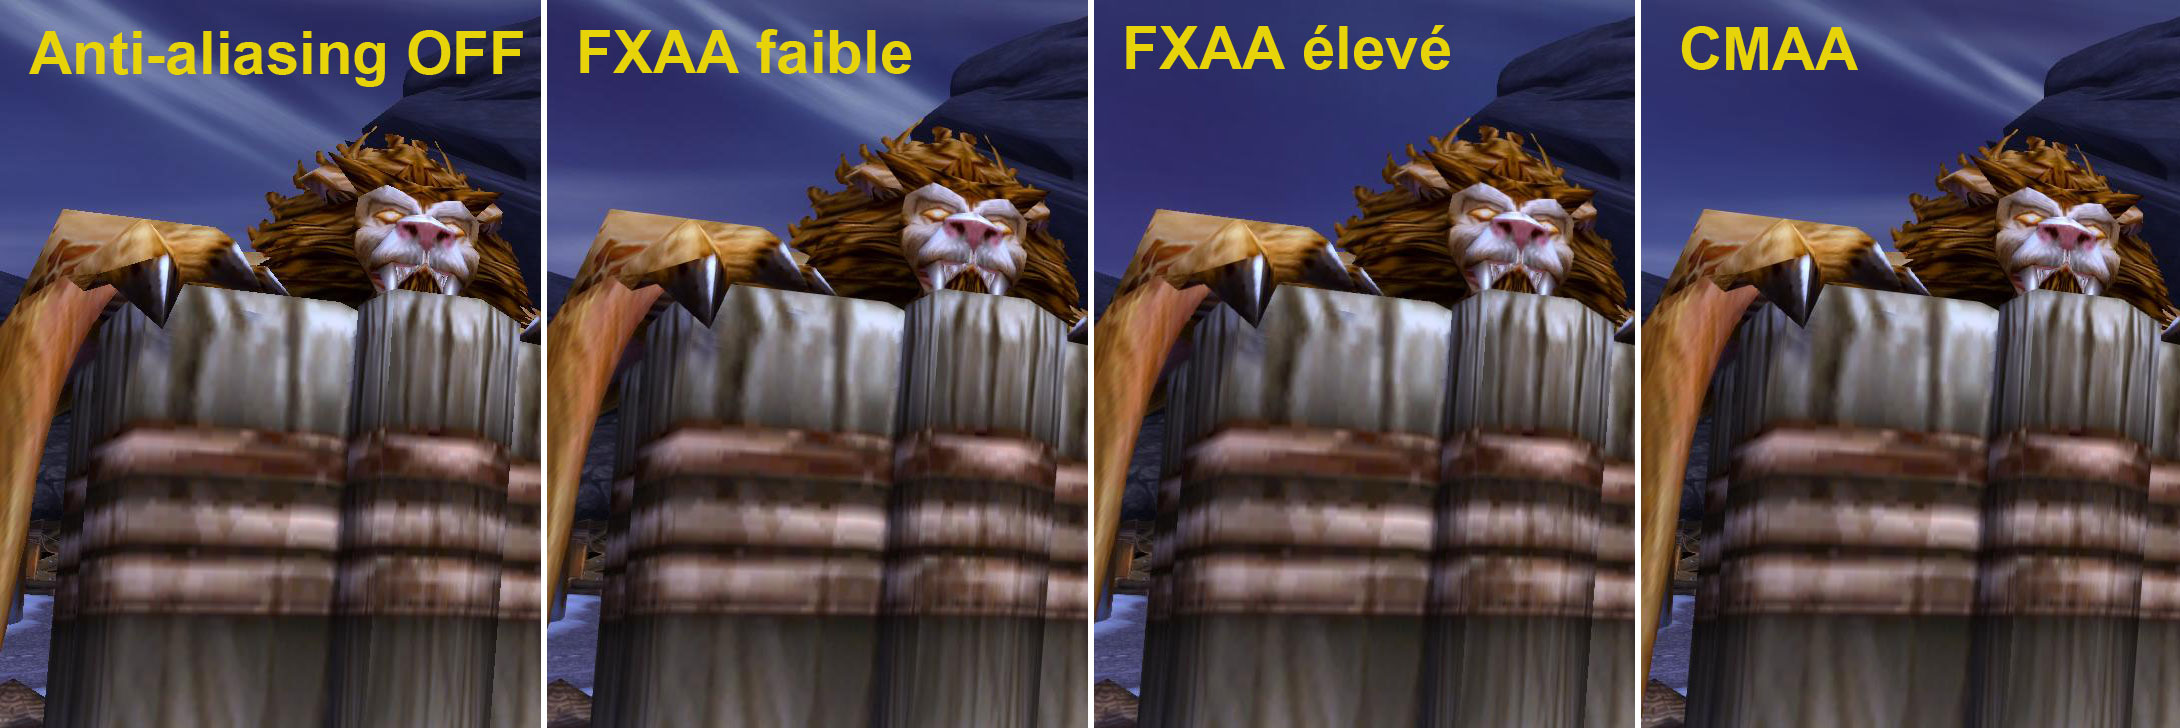 Comparatif des anti-aliasing de Warlords of Draenor (alpha juin 2014).